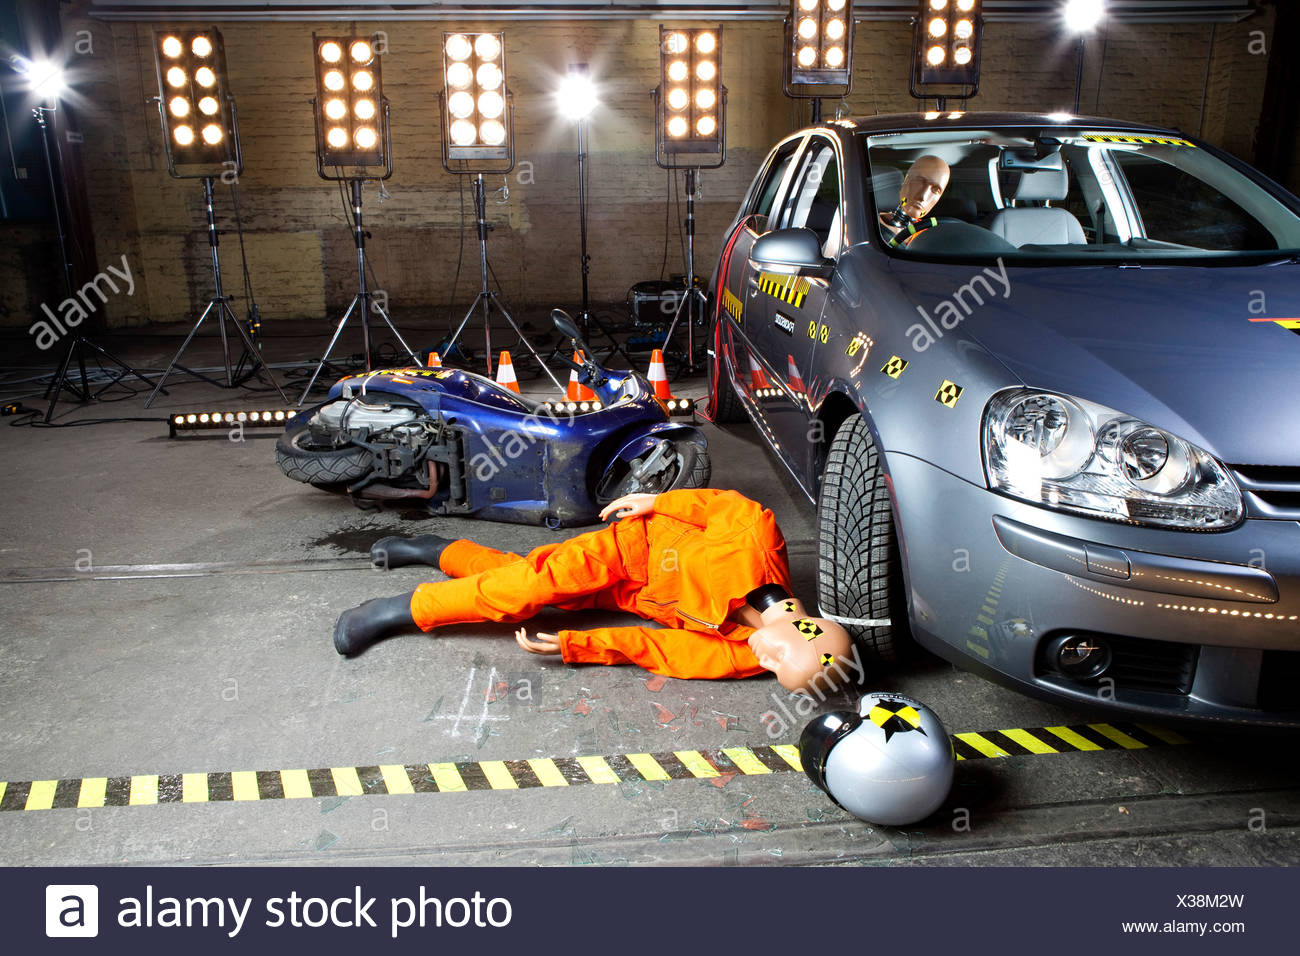 A crash test dummy on ground after scooter crashed into car - Stock Image